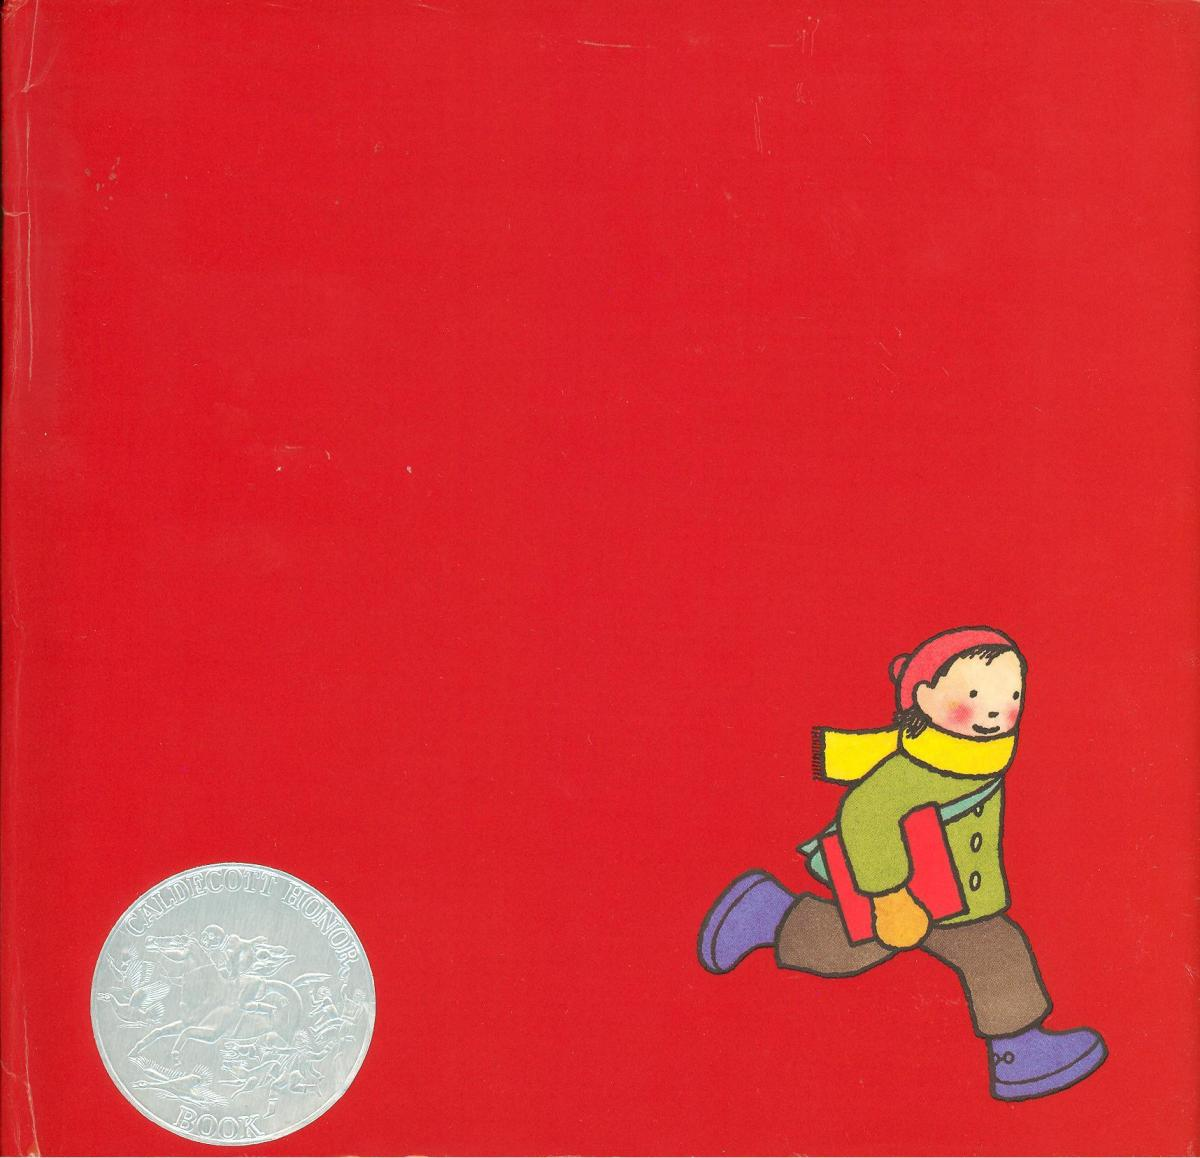 The Red Book - book cover image